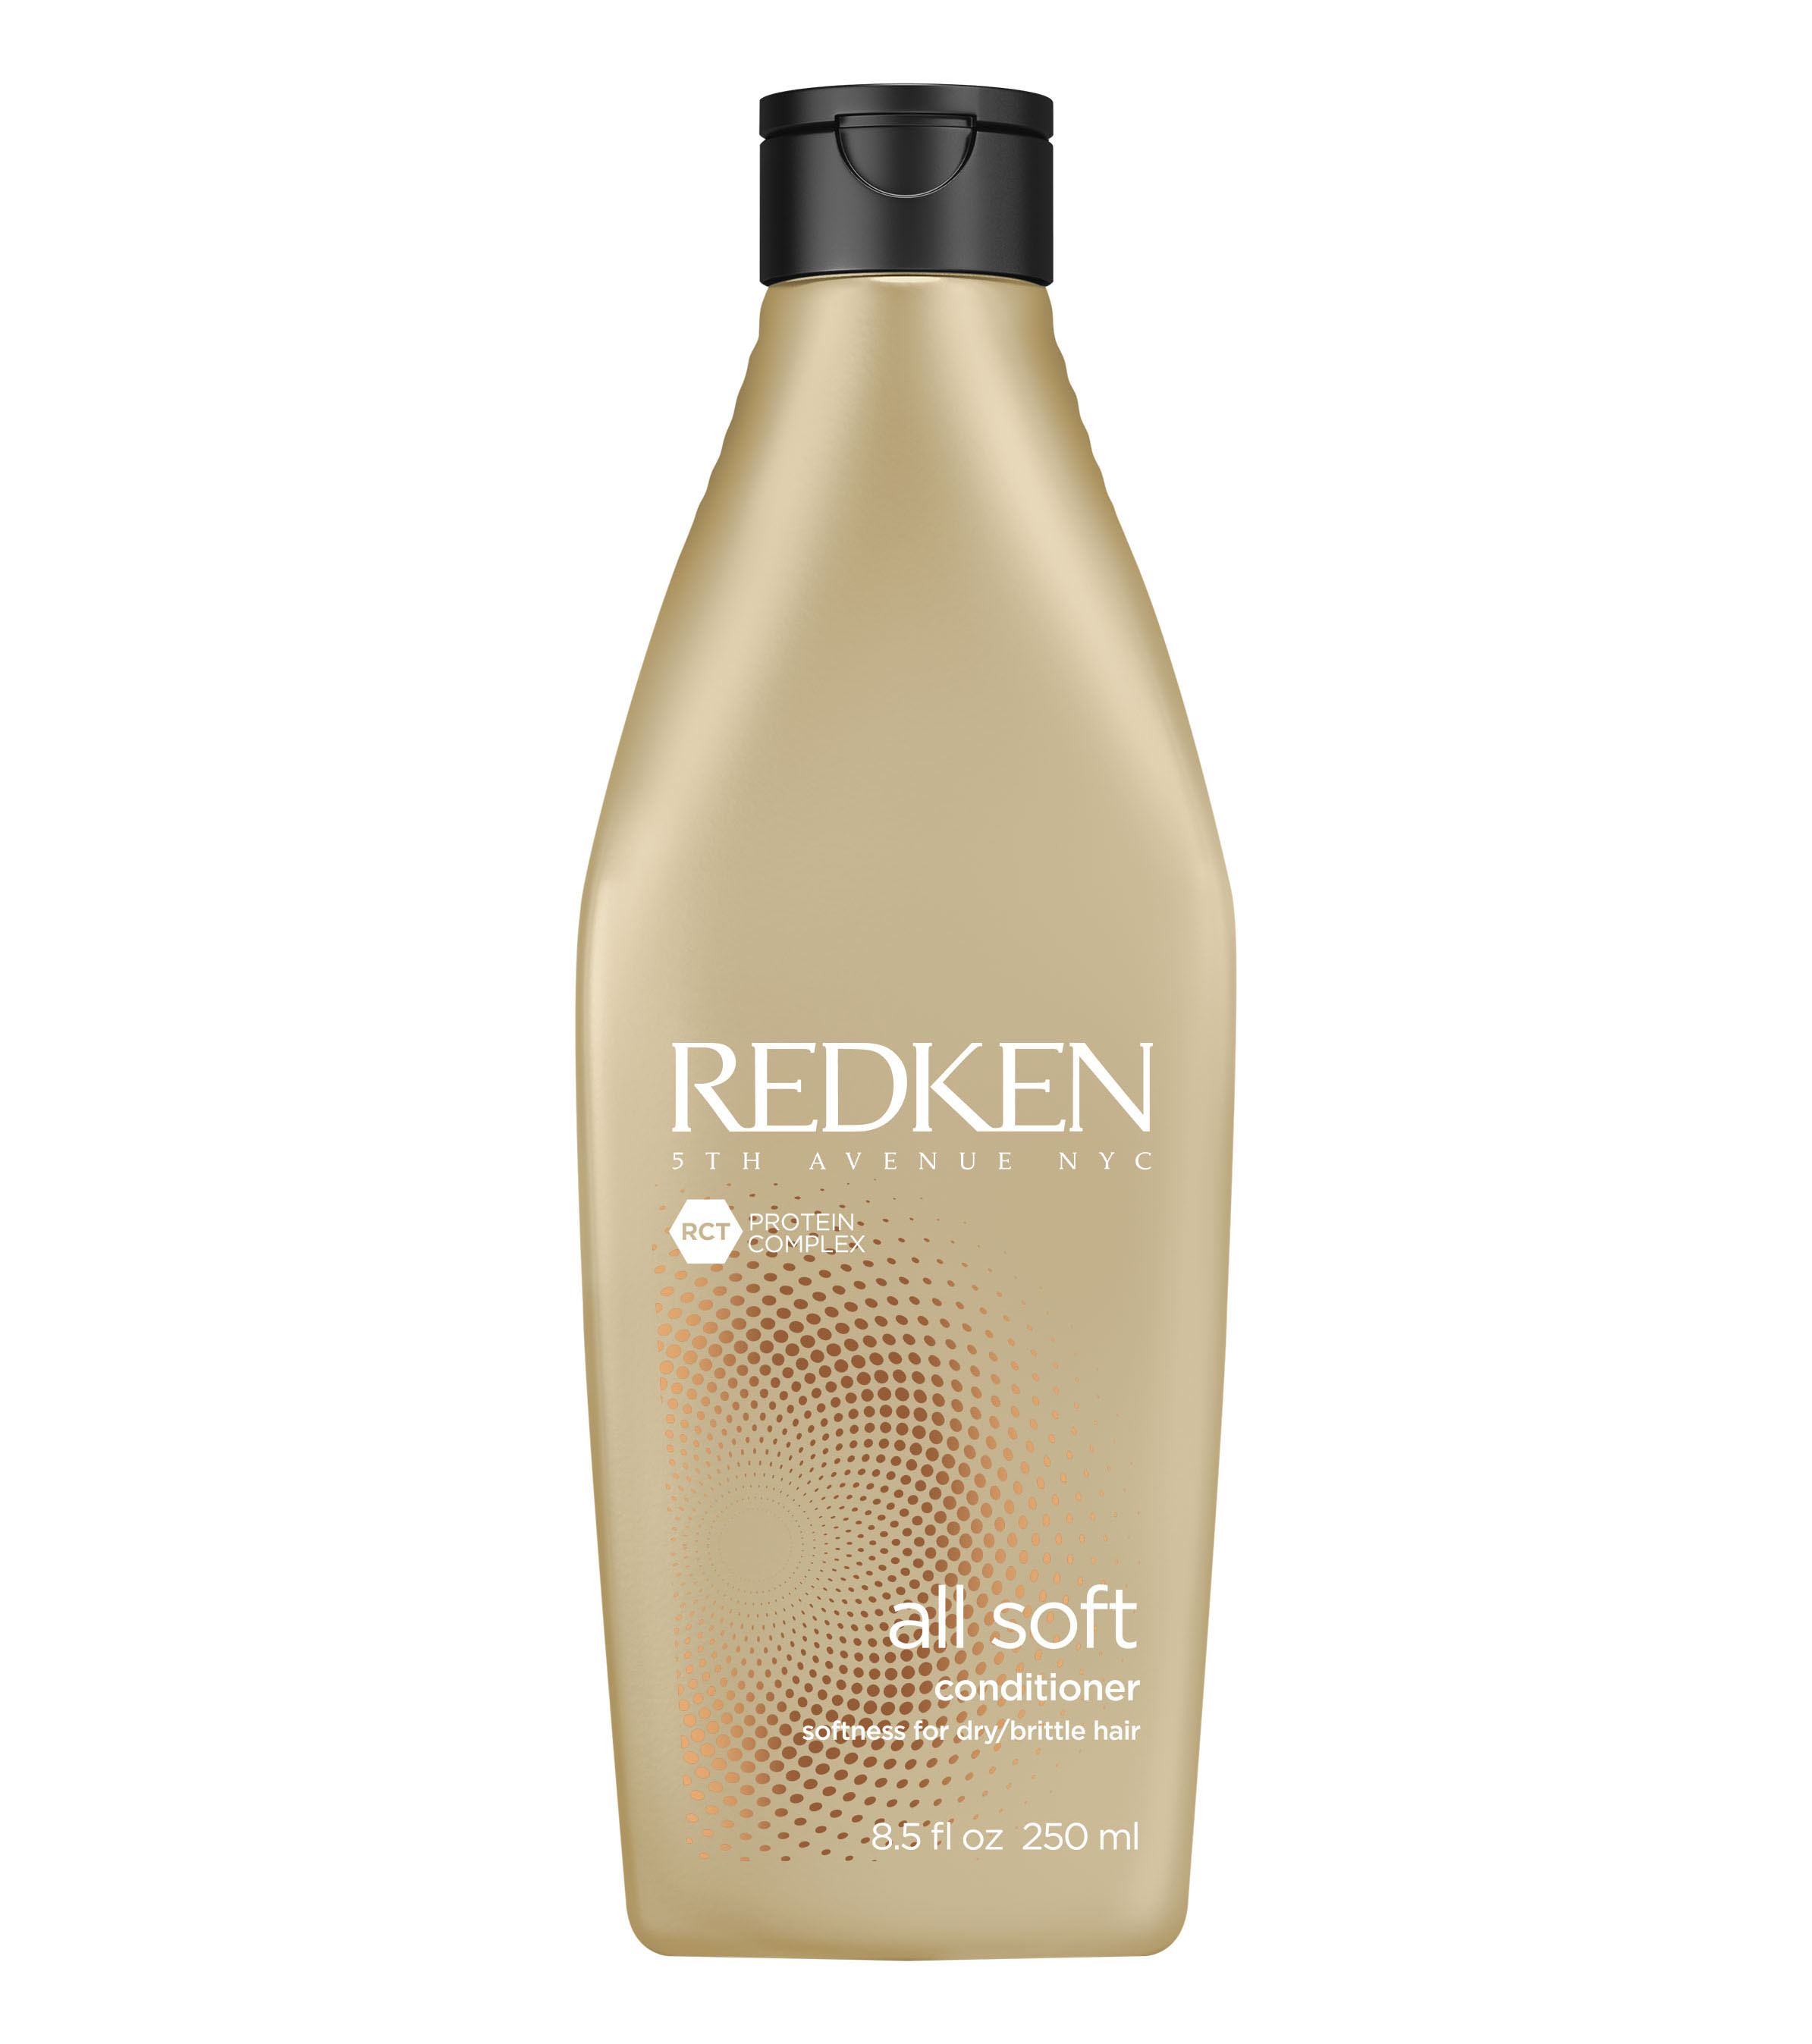 Redken. REDKEN. All Soft Conditioner, 250ml